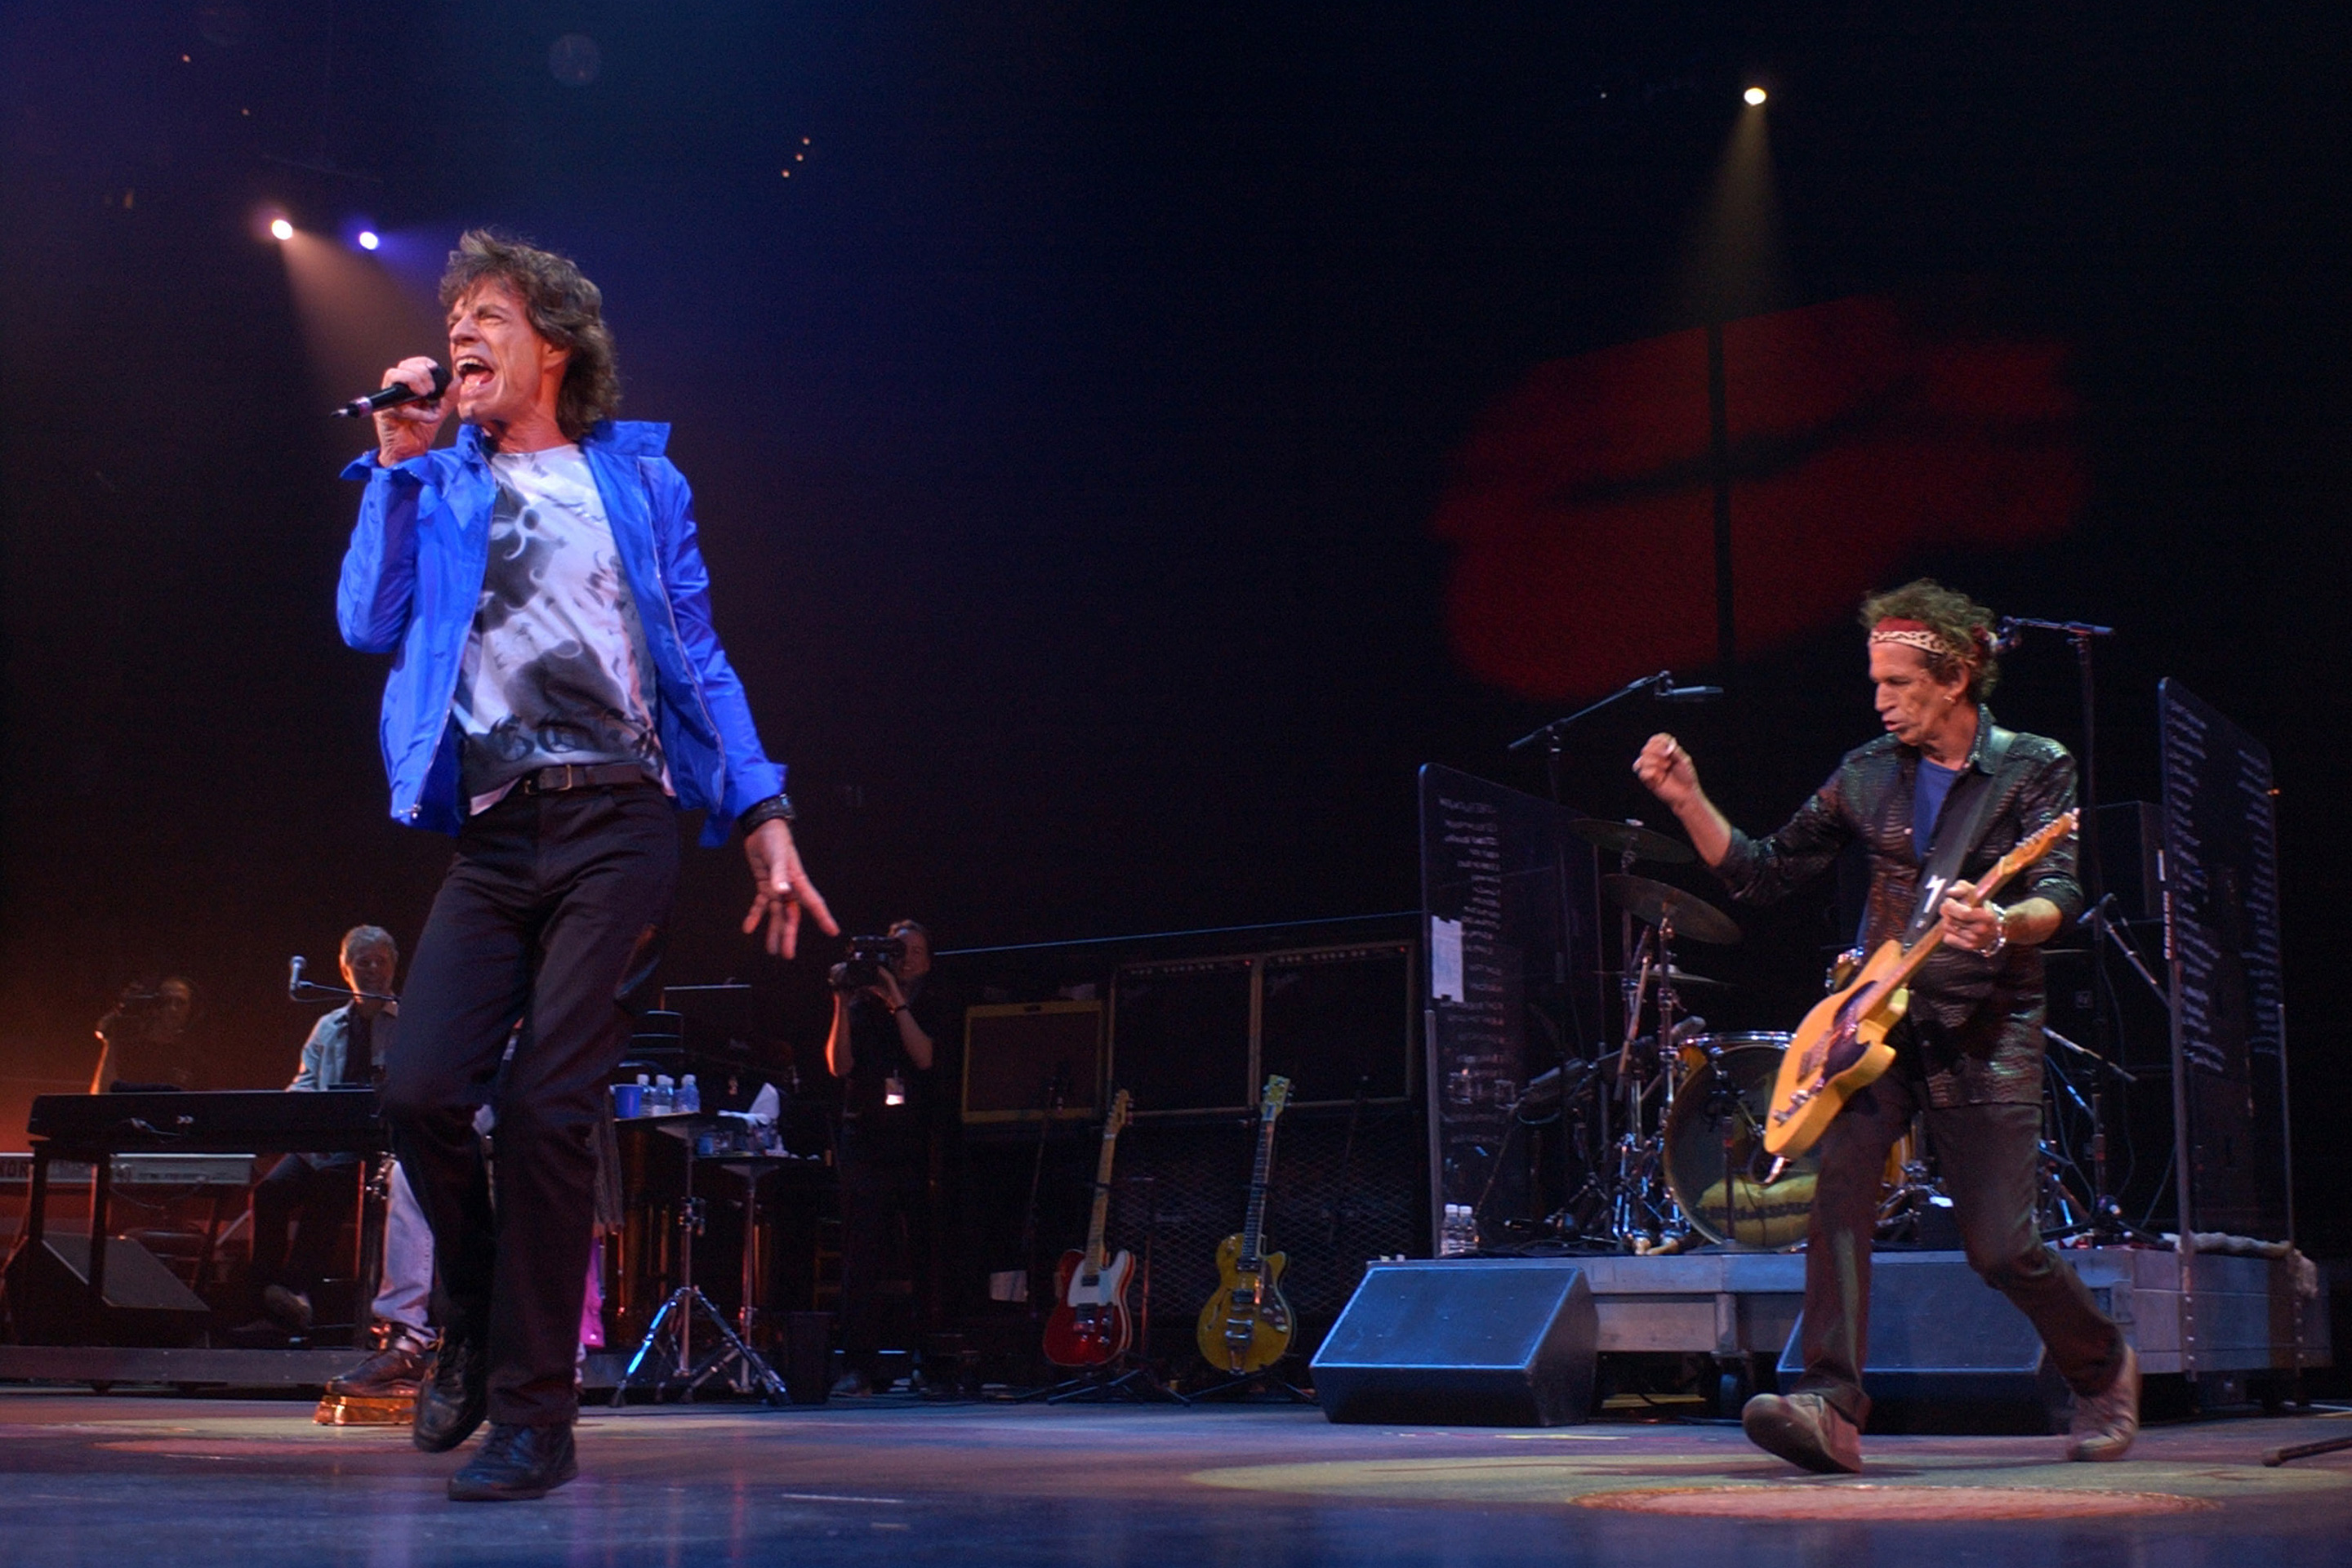 The Stones kick off the Licks tour in Boston.